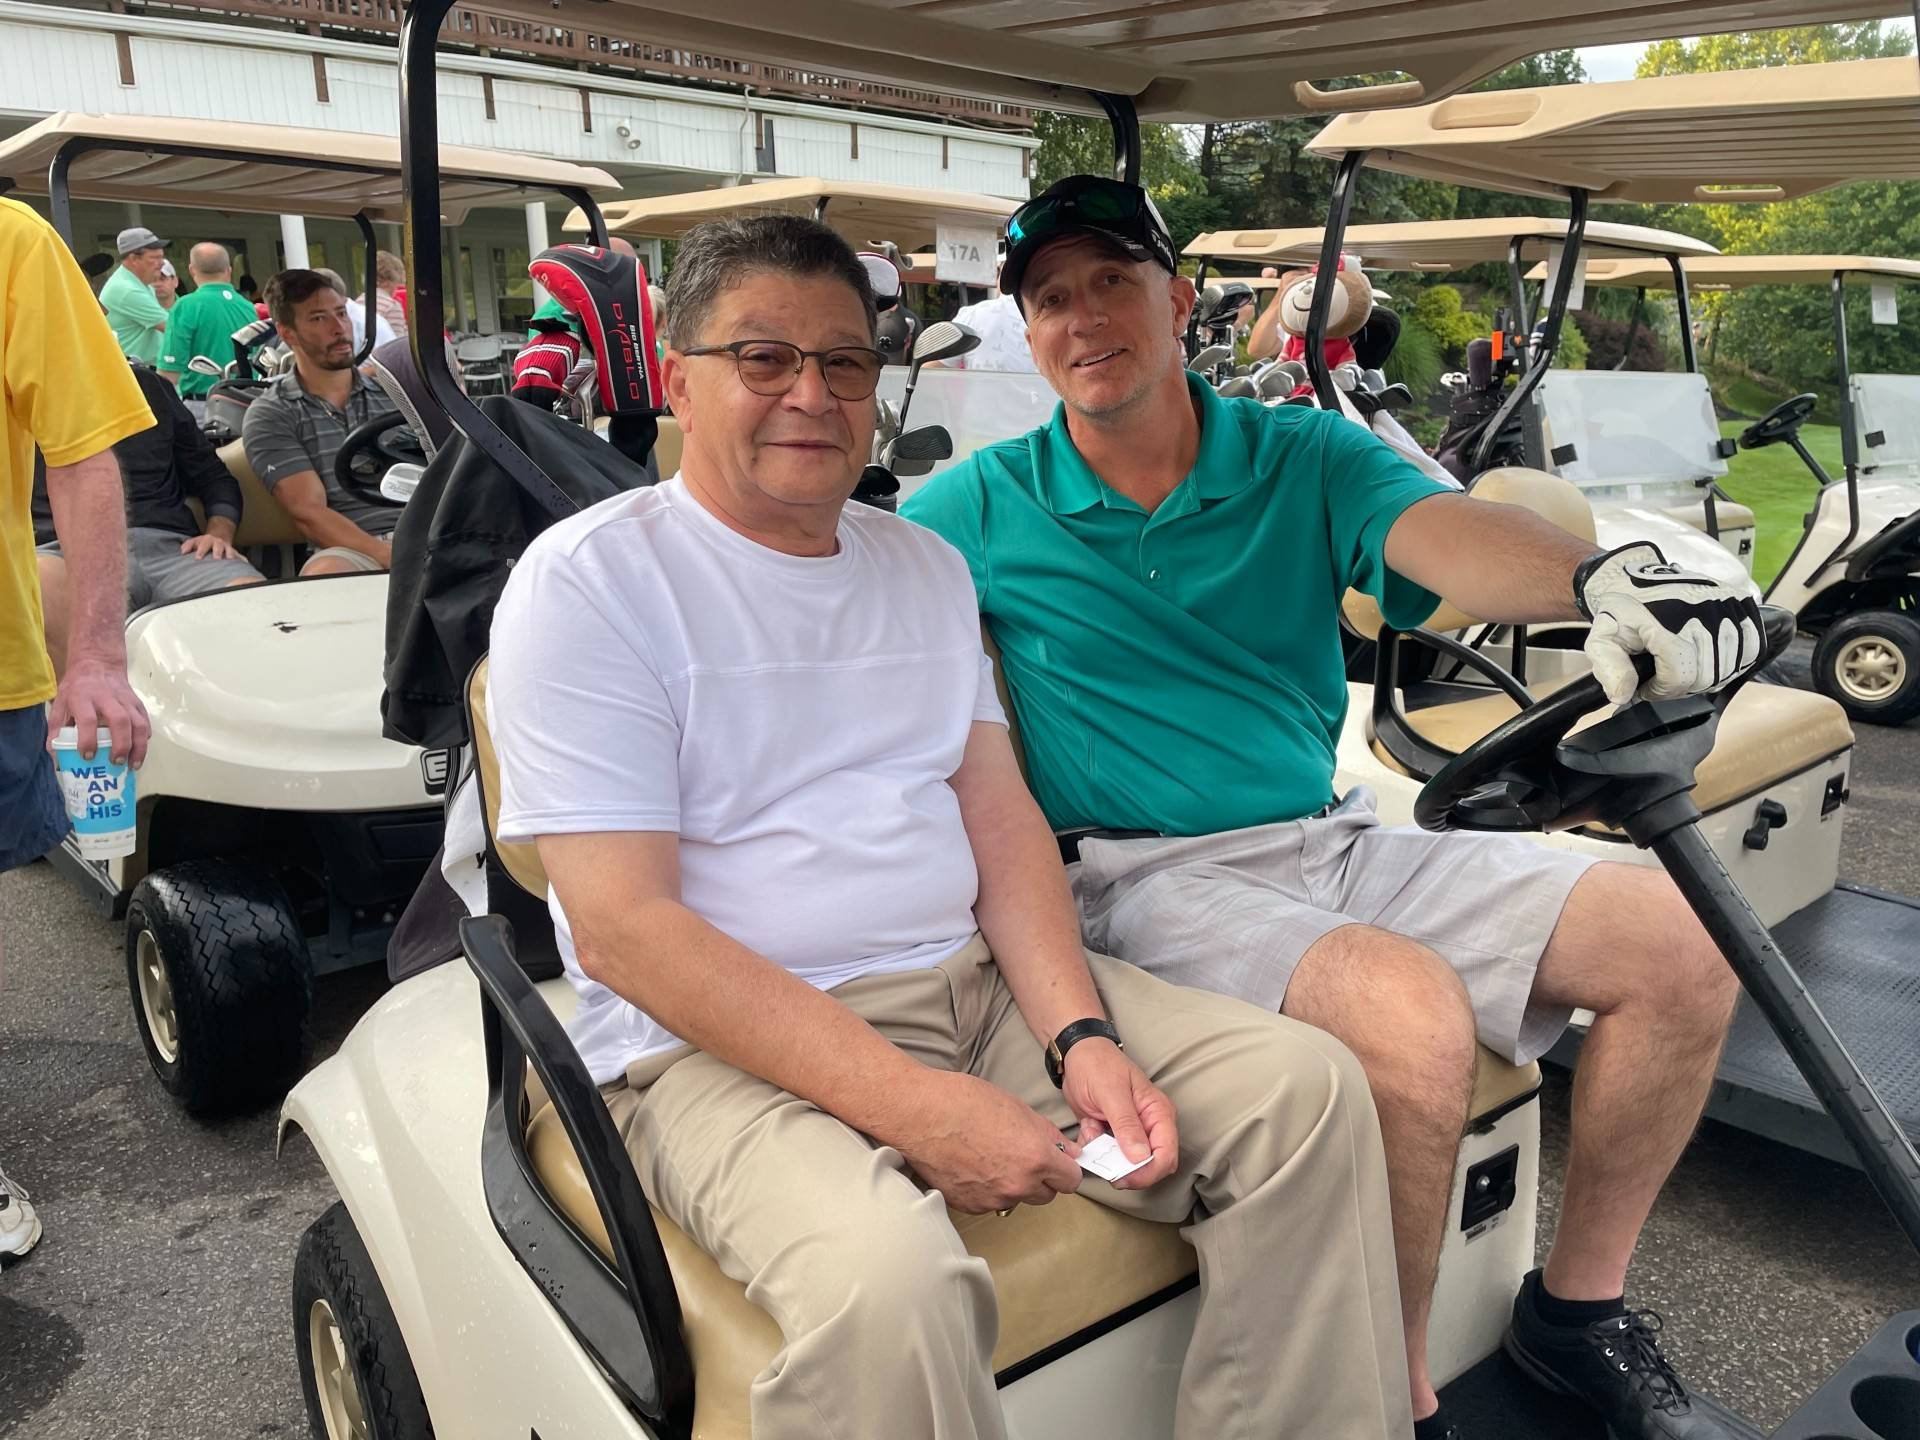 2021 Golf Outing riders in cart